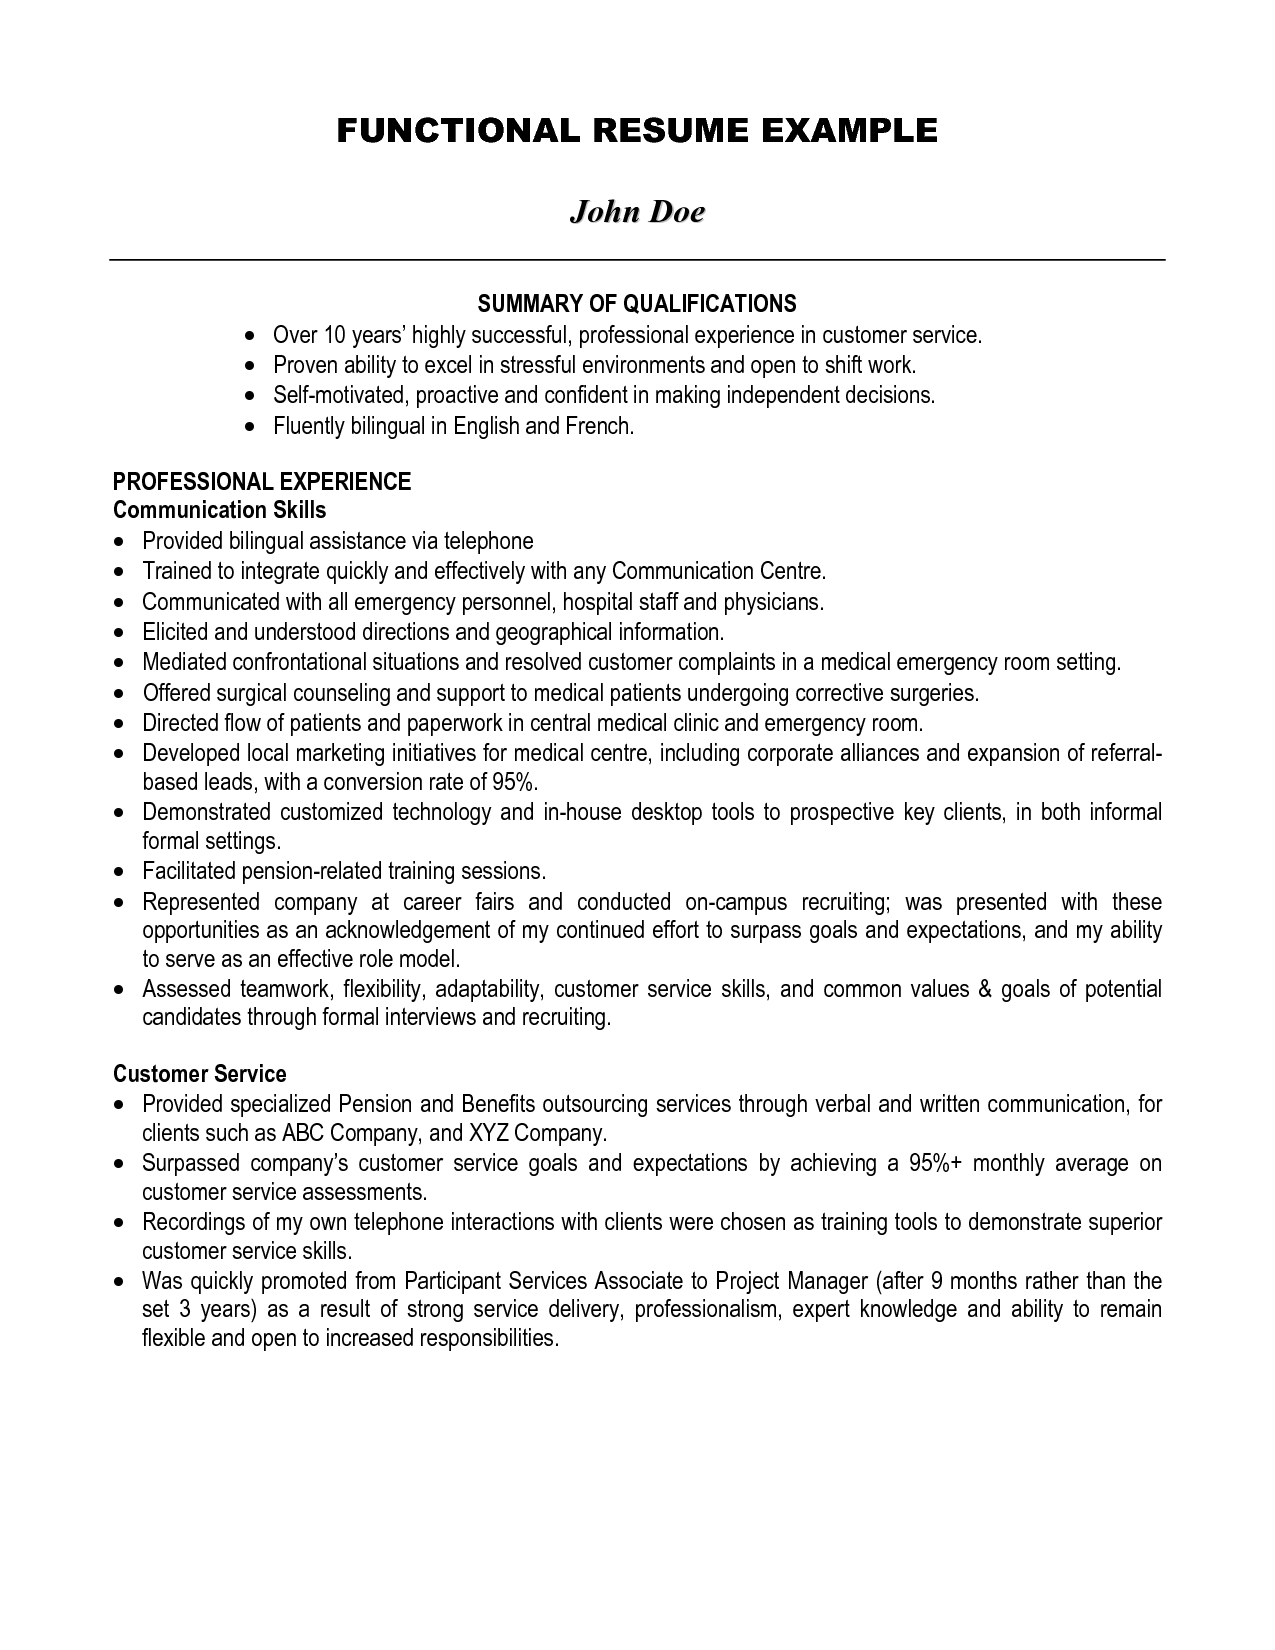 Best Summary Of Qualifications Resume For 2016